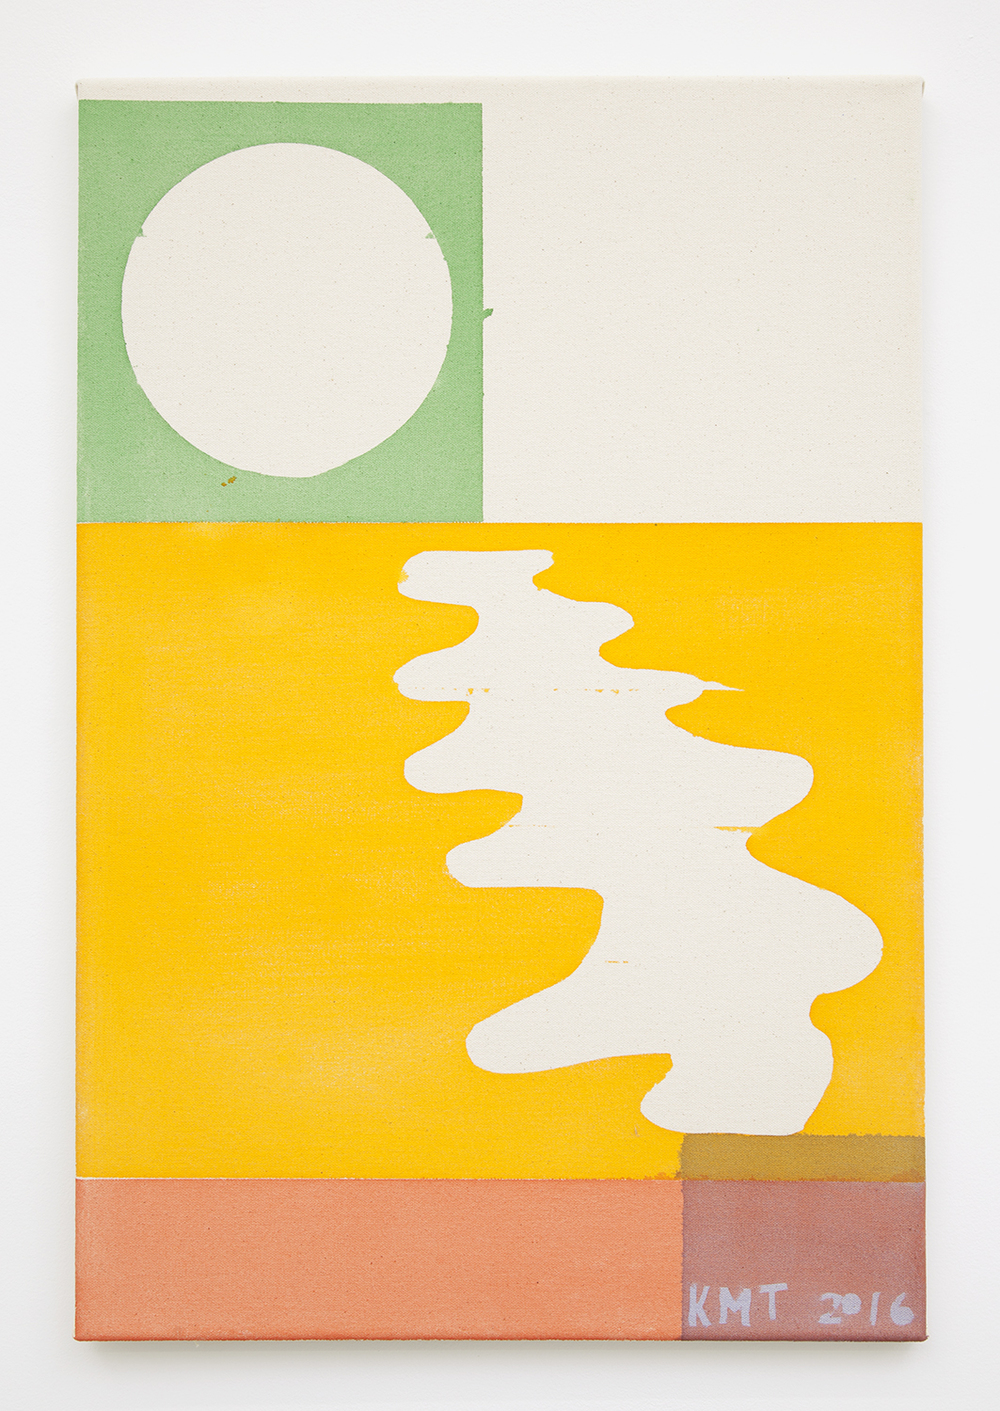 Kevin McNamee-Tweed Green Sun Yellow Water Red Land, 2016 Pigment on raw canvas 22 x 16 inches